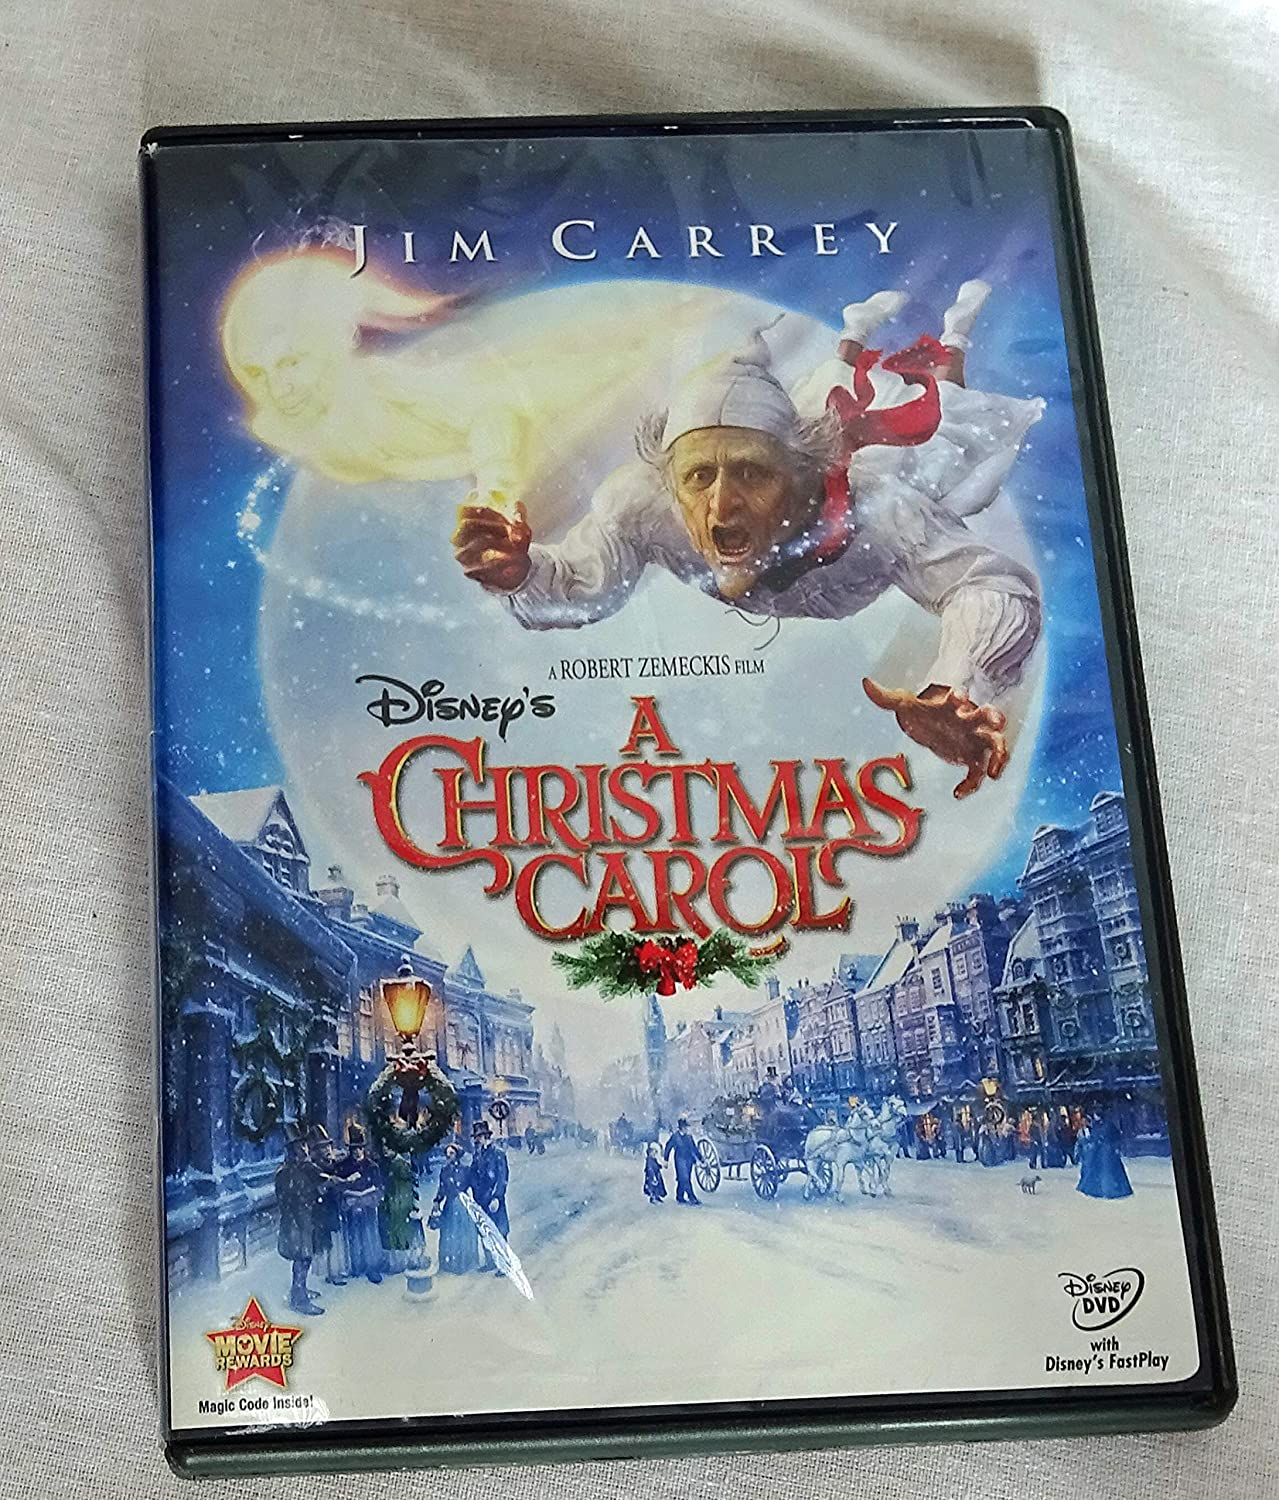 A Christmas Carol [DVD] by Jim Carrey: Jim Carrey, Steve Valentine ...